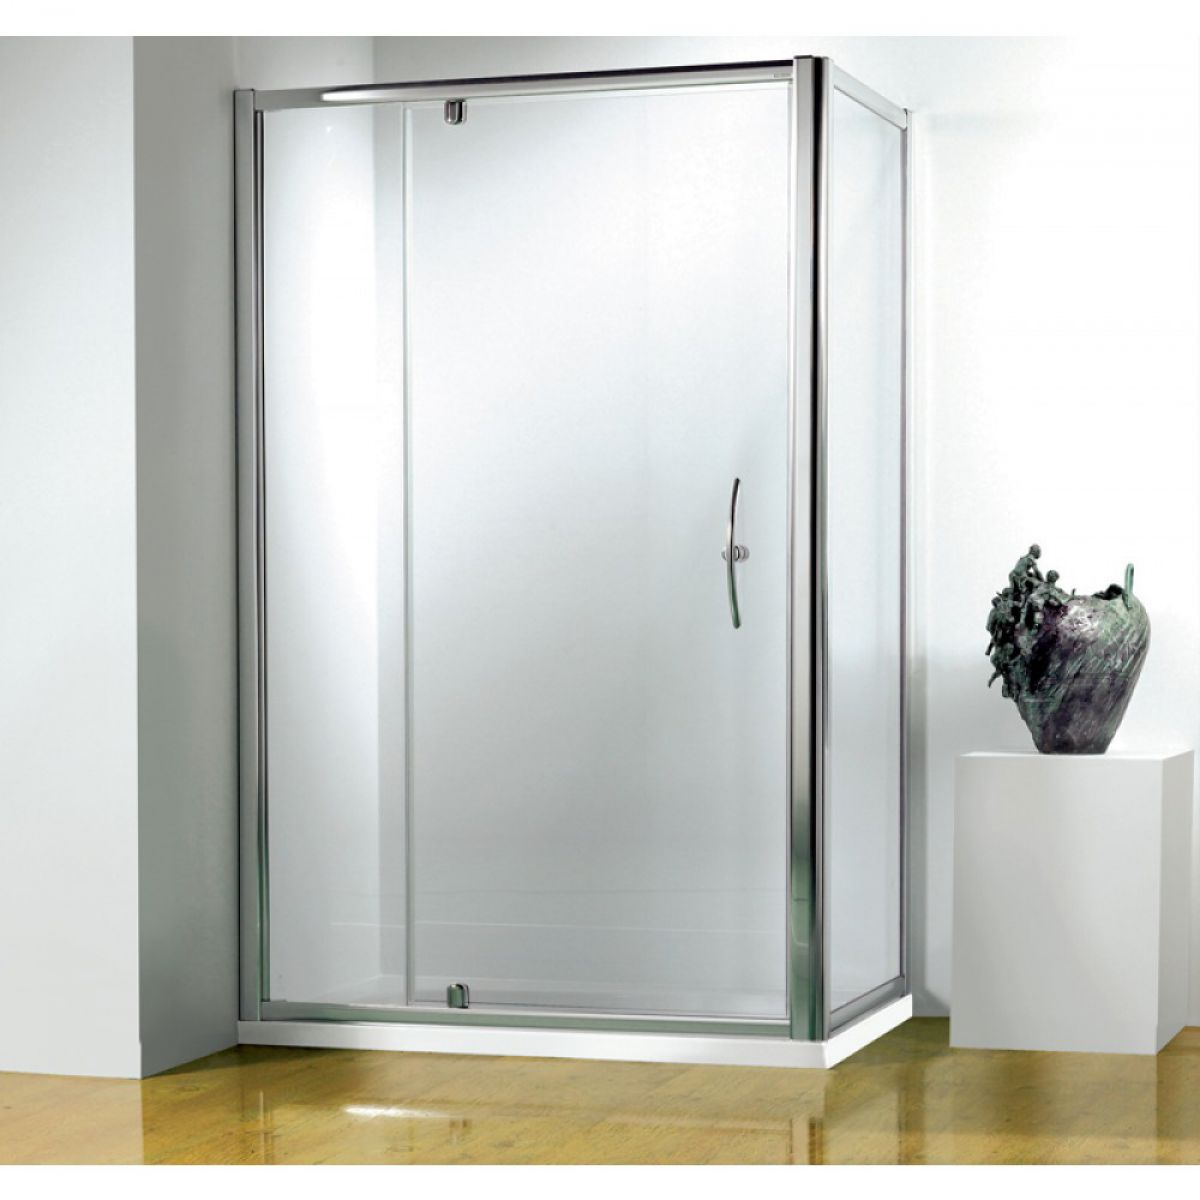 Kudos original 1000mm pivot shower door uk bathrooms for 1000mm shower door